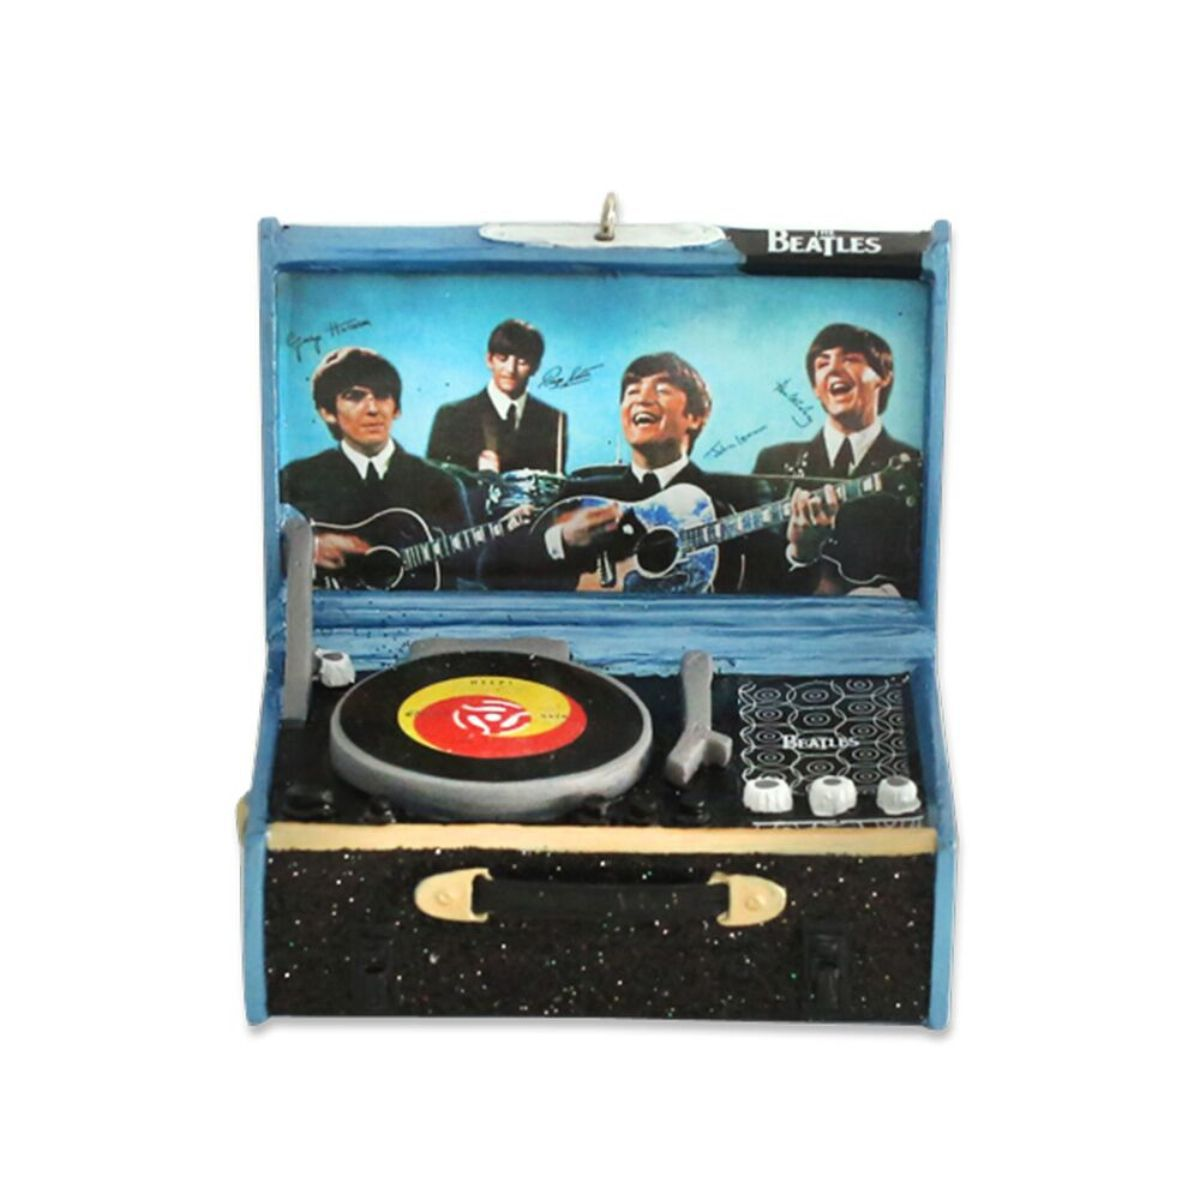 The Beatles Blue Record Player Ornament